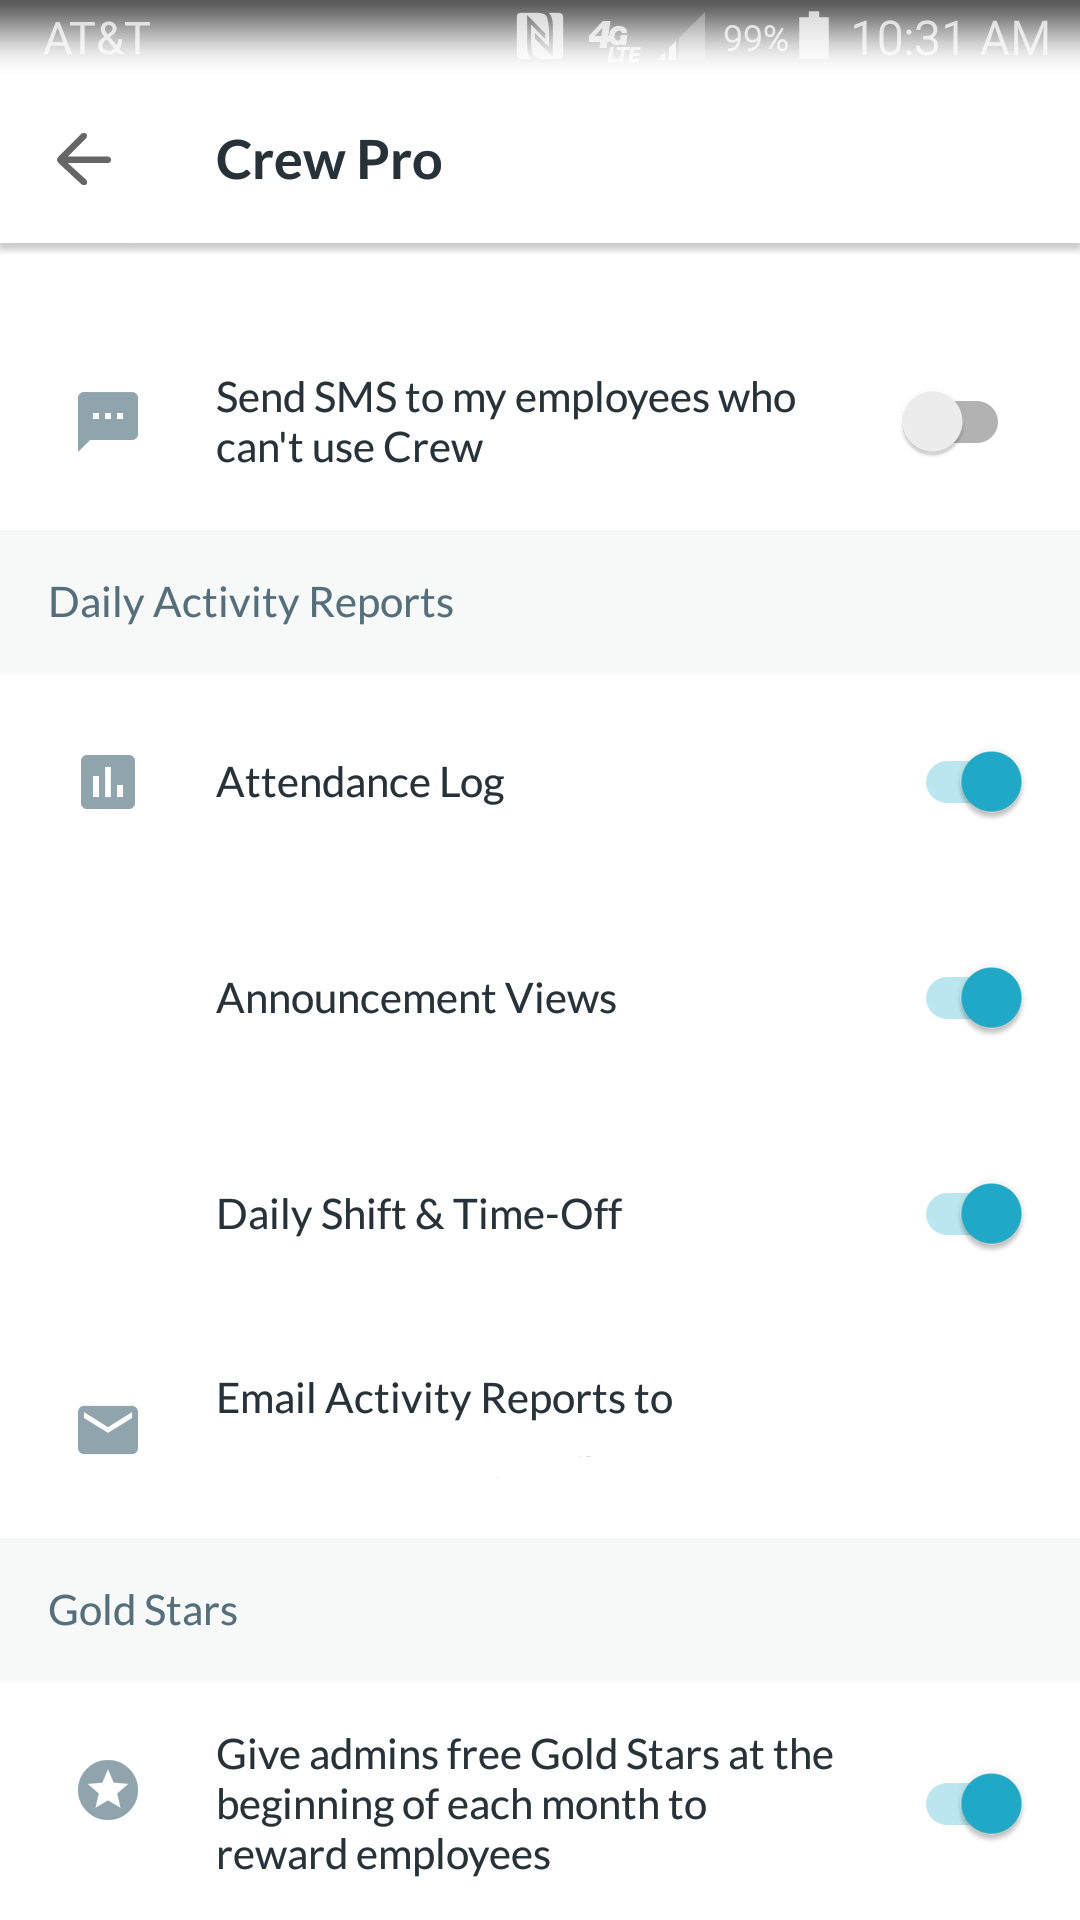 Choose the Daily Activity Reports you want to be sent from this screen